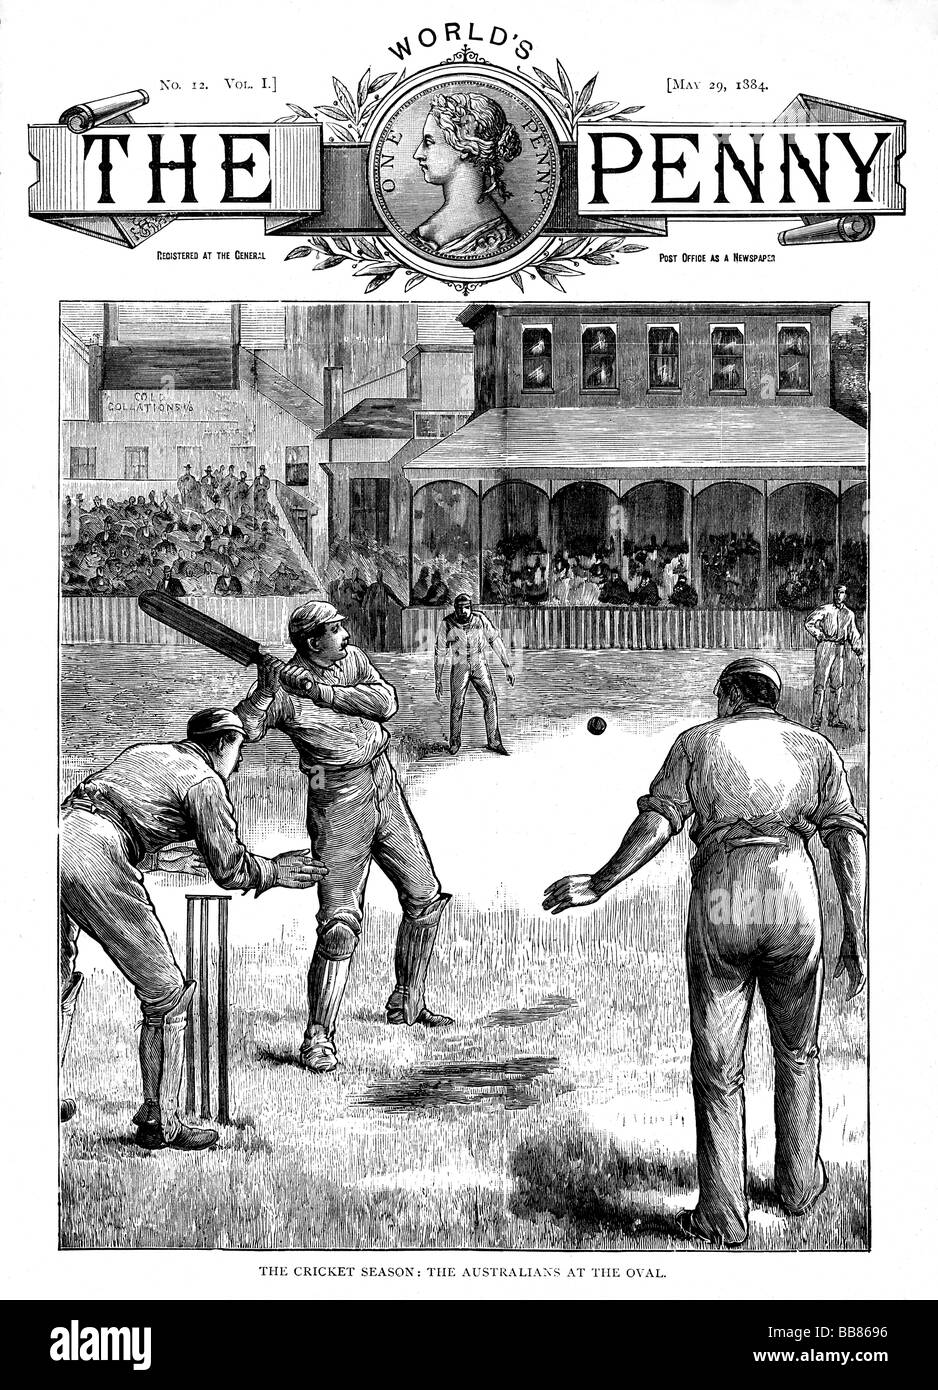 Australia At The Oval 1884 magazine cover with the touring Australian Ashes team playing Surrey in May - Stock Image